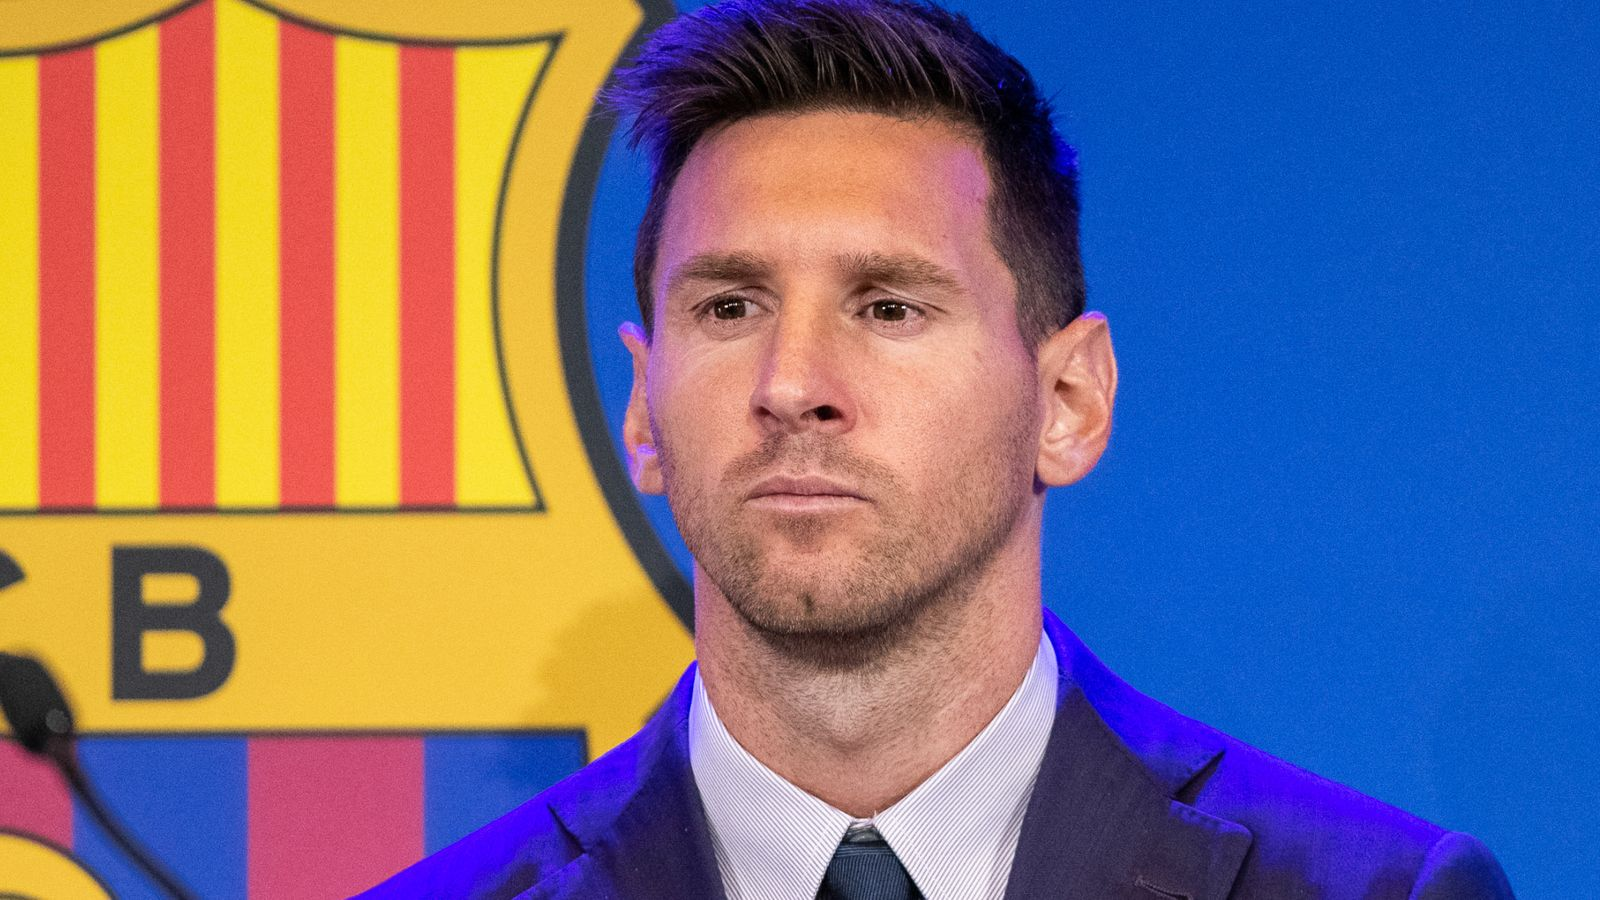 Lionel Messi gets formal PSG 2-year contract offer after Barcelona exit